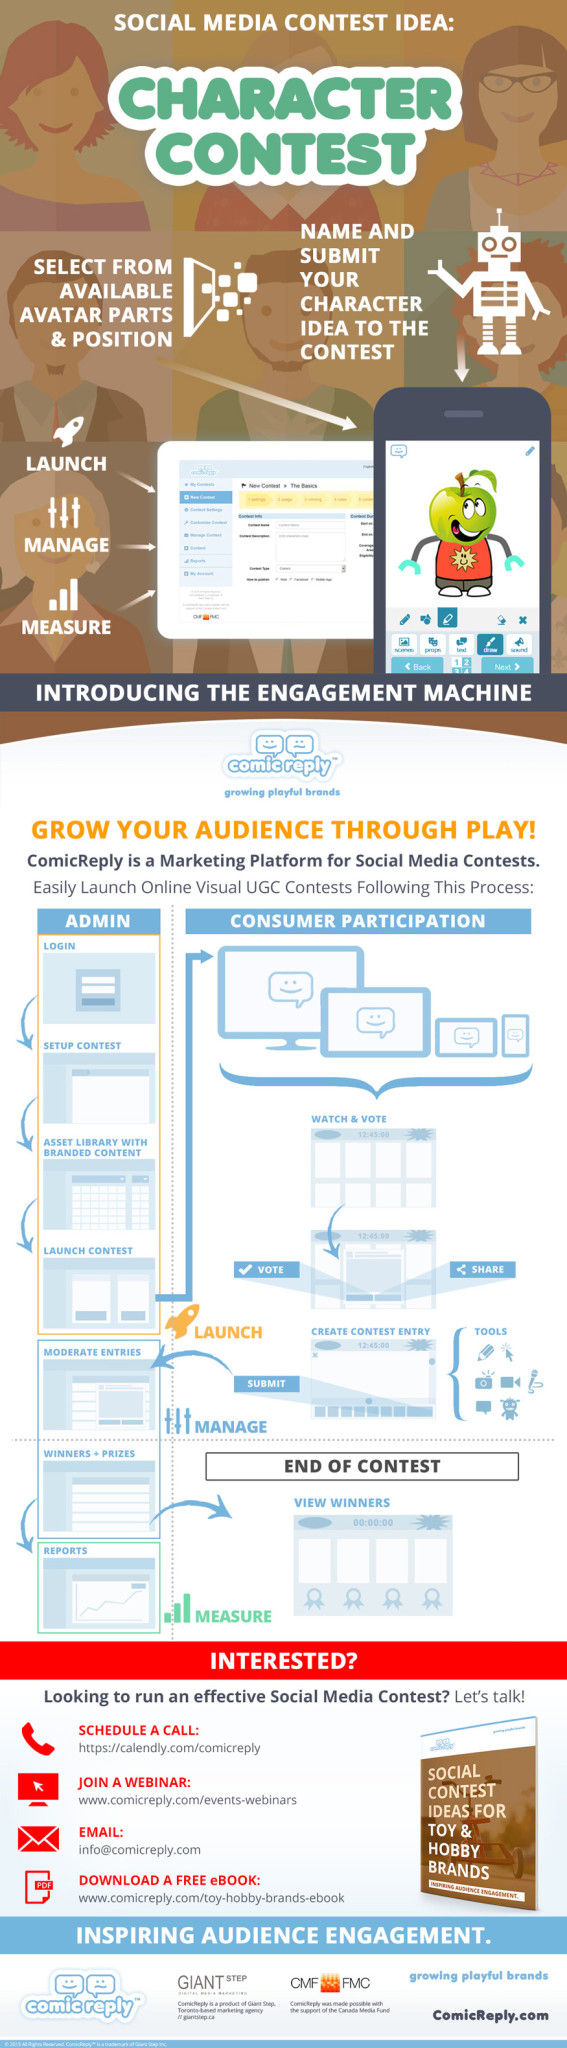 ComicReply-Social-Media-Contest-Idea-For-Animation-Toy-Marketing-Infographic